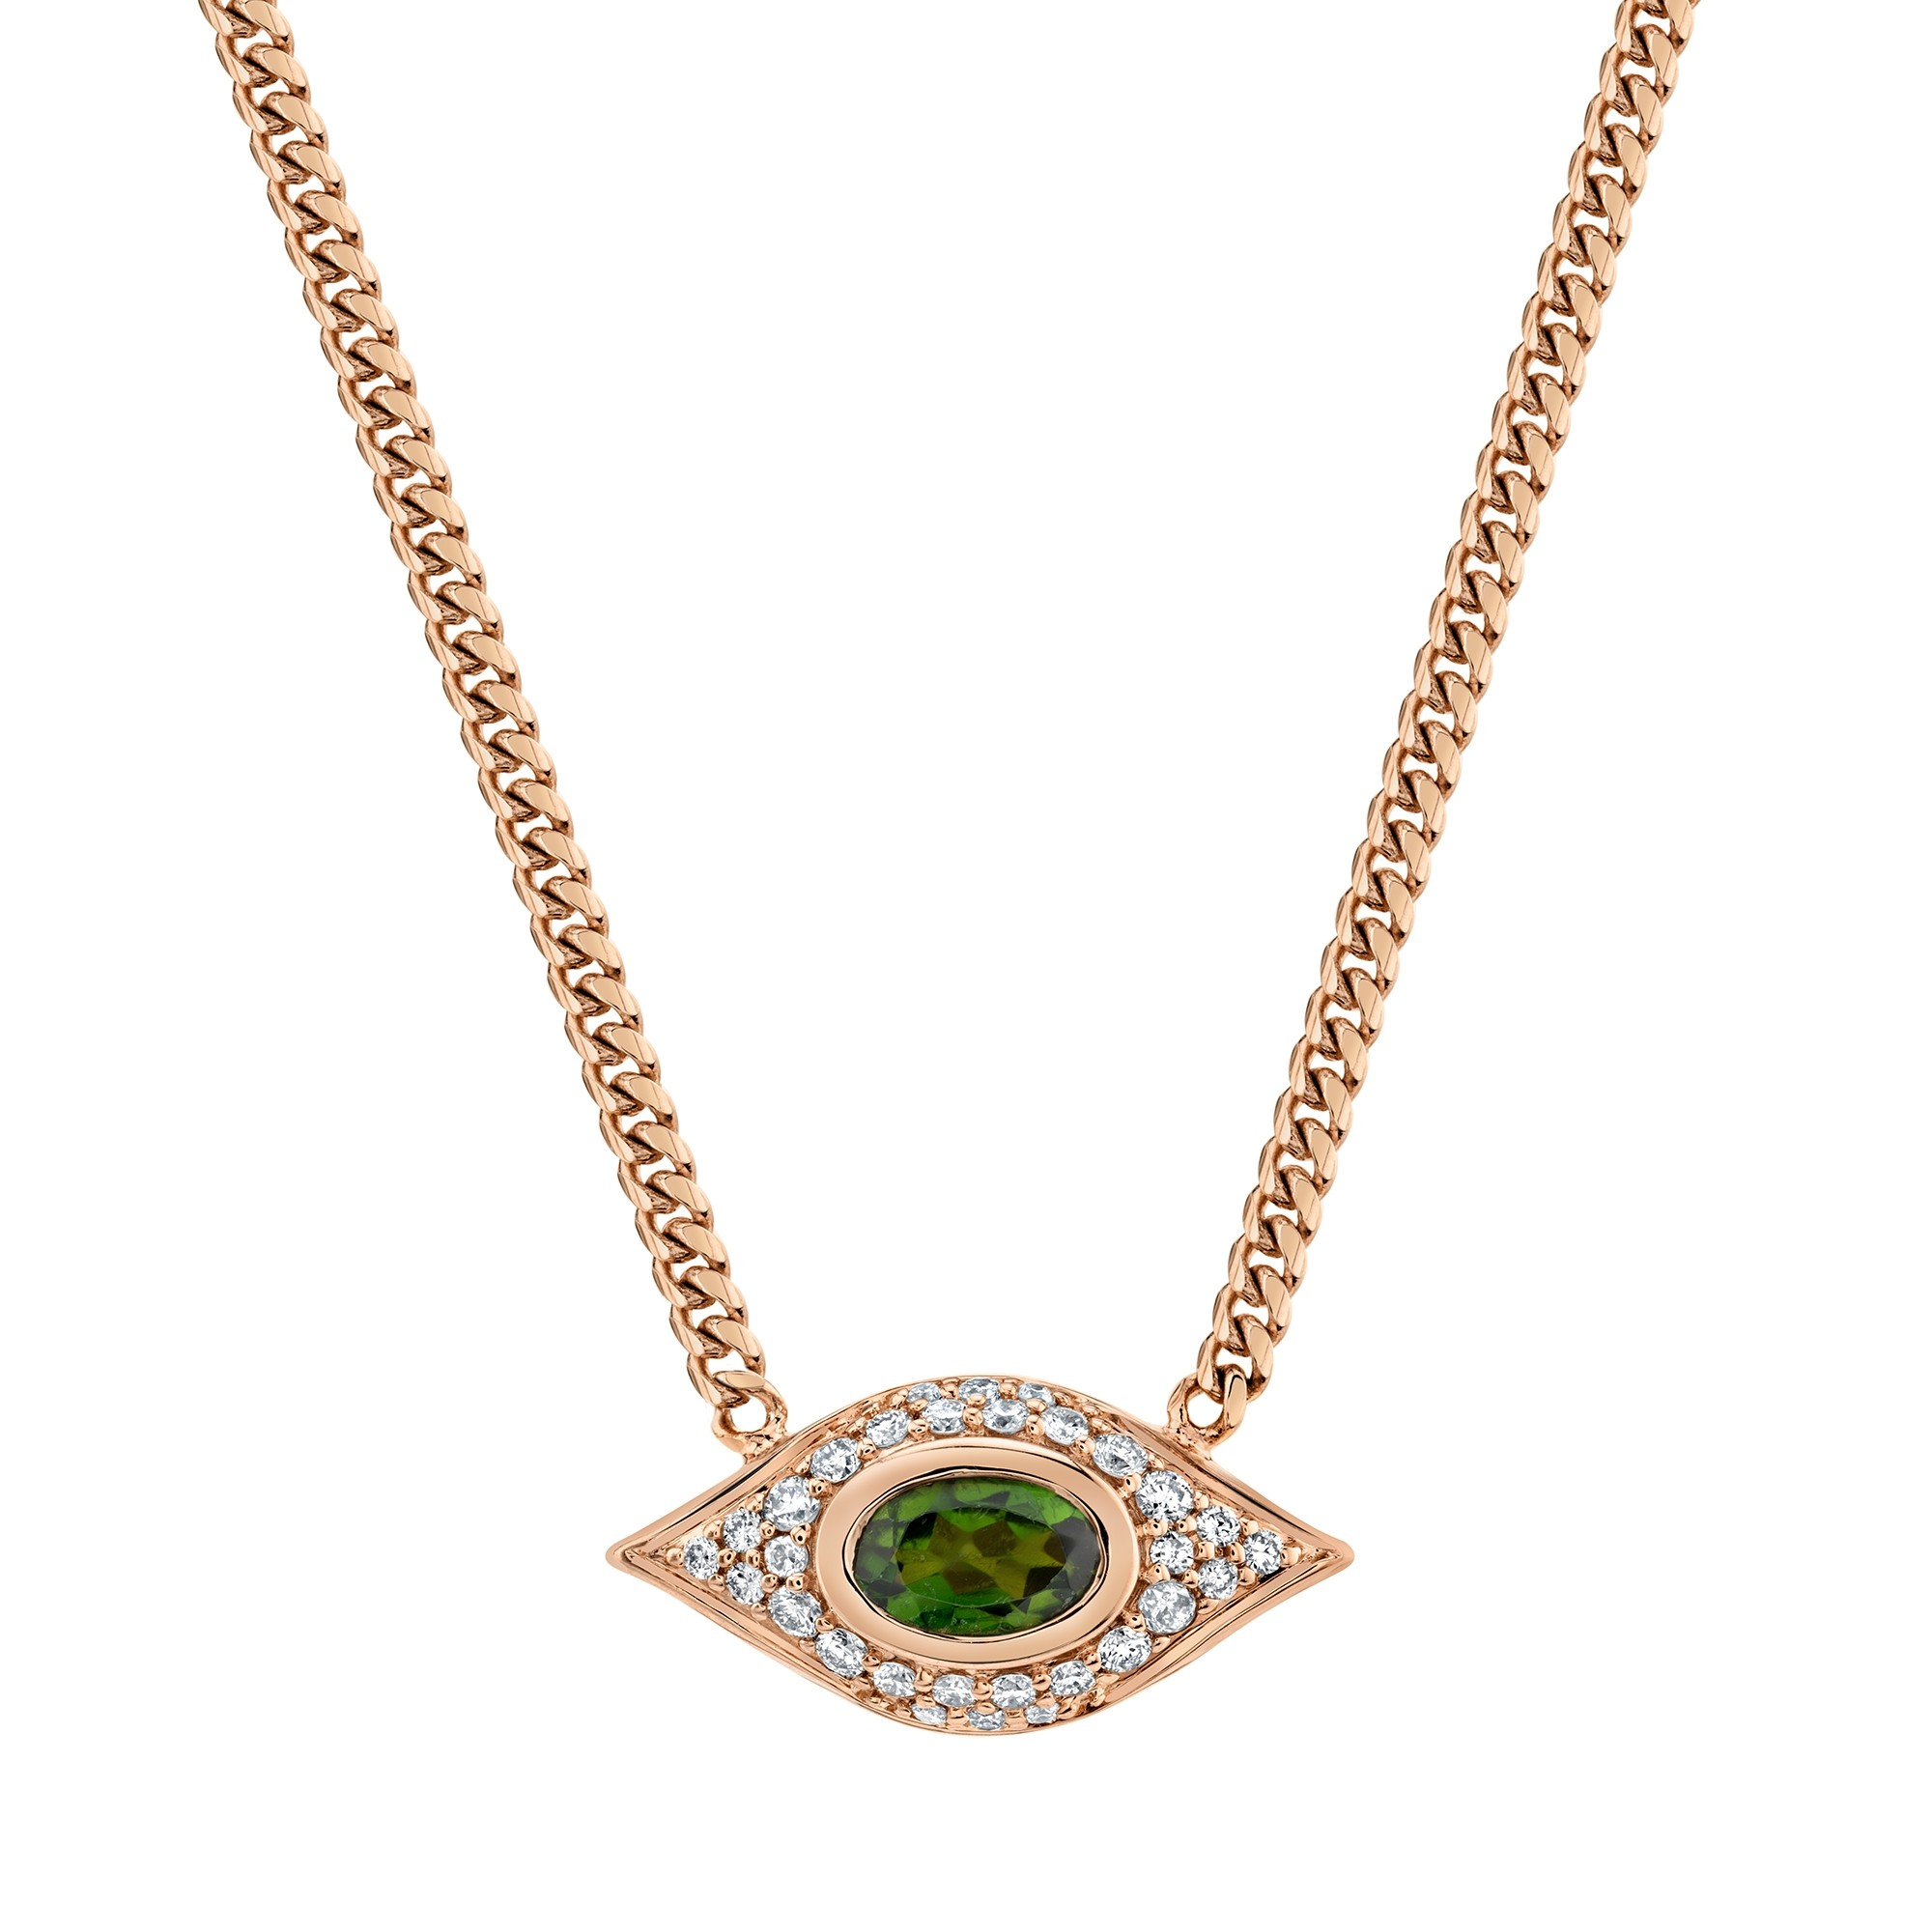 14k Rose Gold Diamond Oval Green Tourmaline Evil Eye Necklace